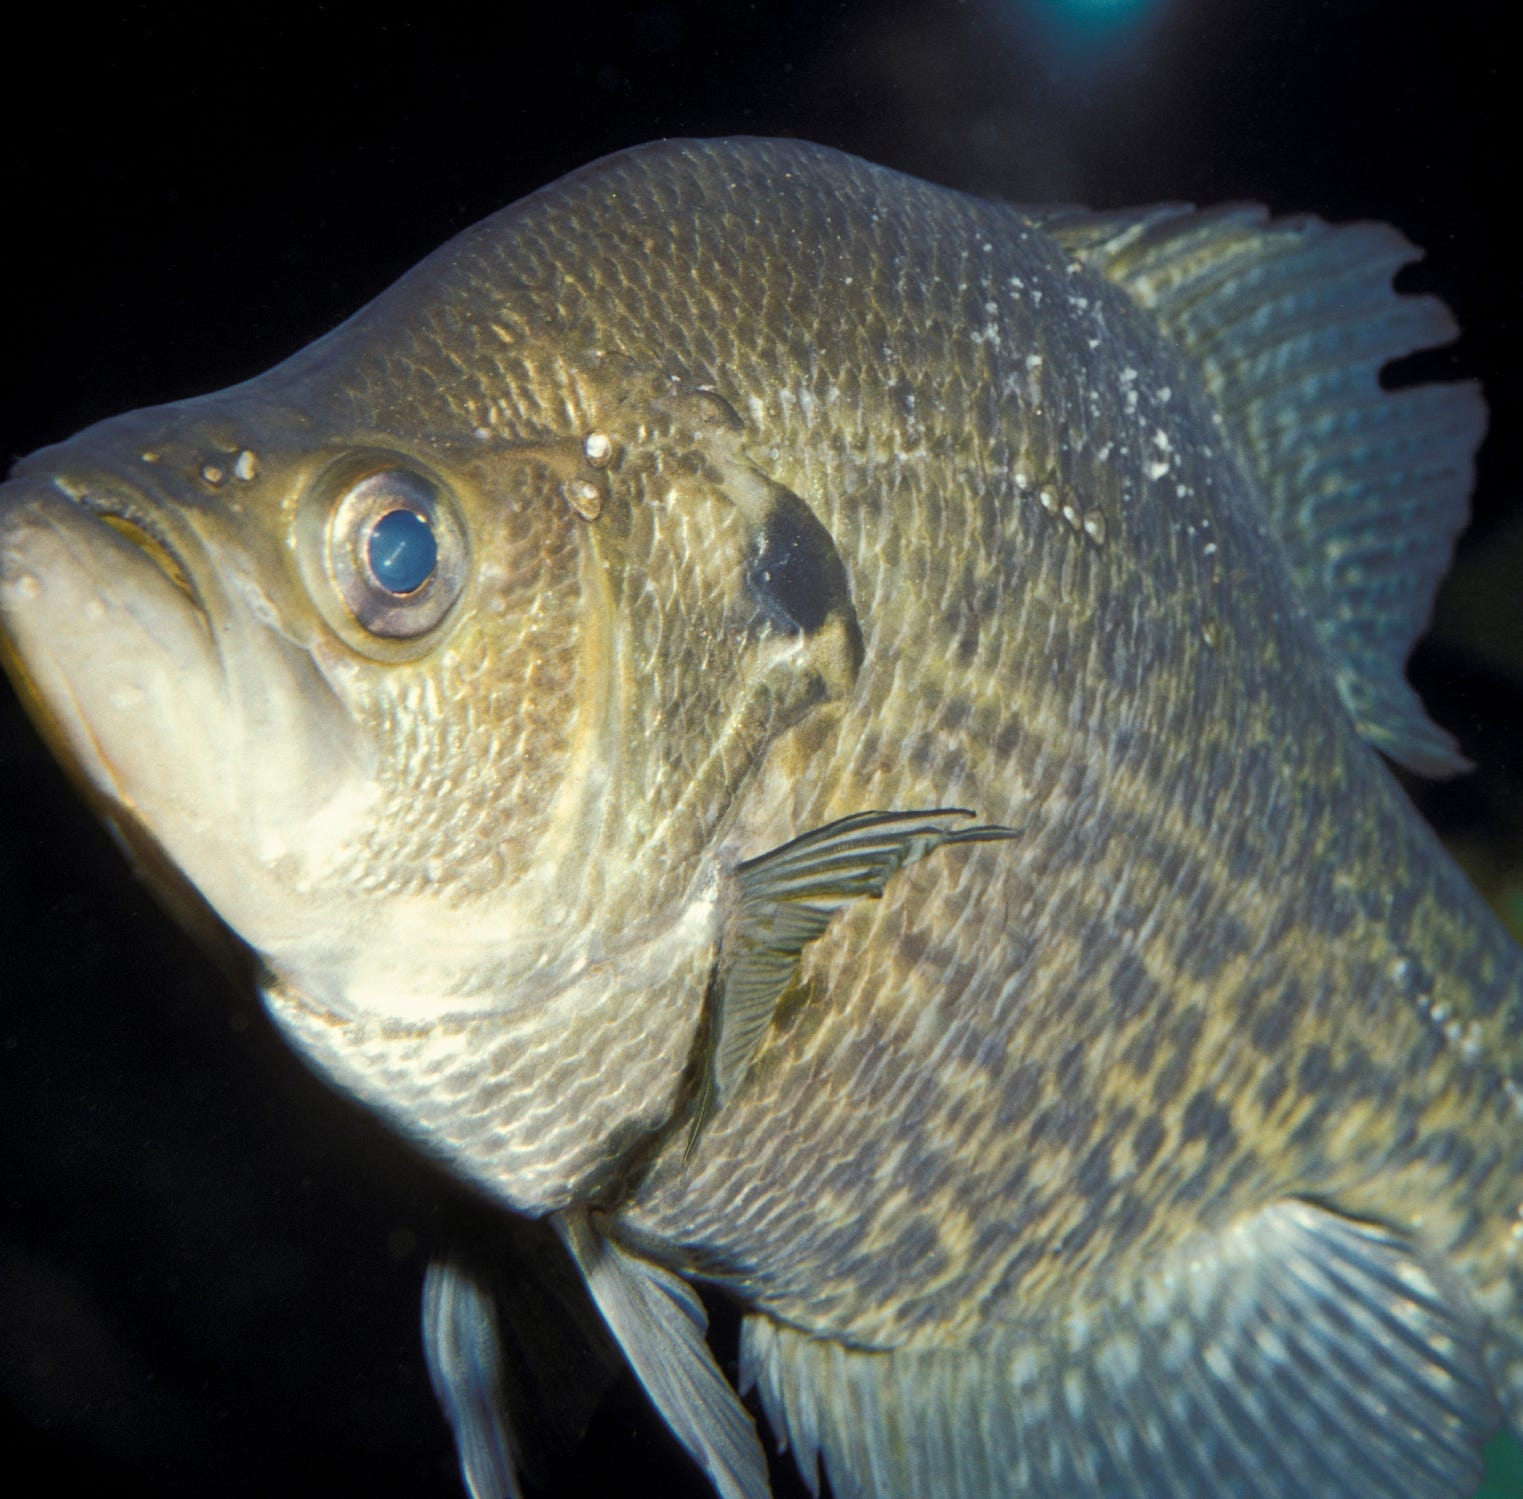 Anglers set for somewhat overlooked crappie season